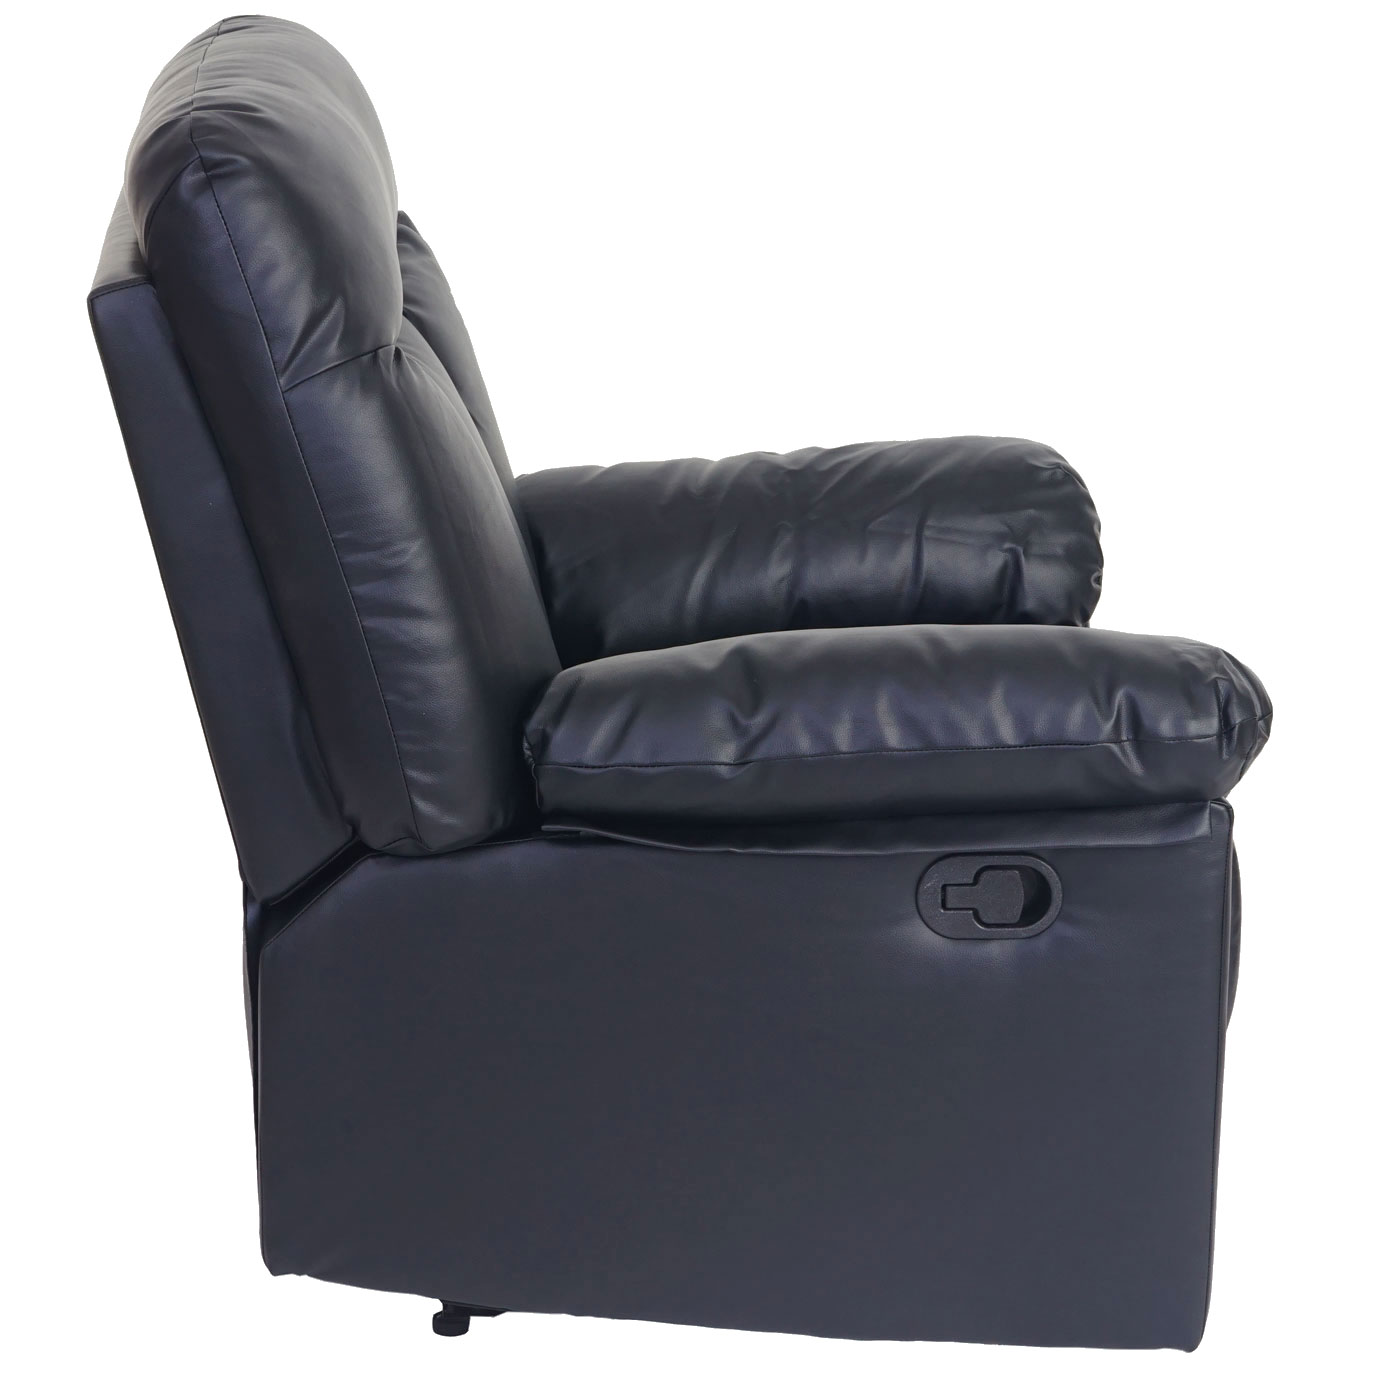 Fernsehsessel watford relaxsessel liege sessel schwarz for Fernsehsessel relaxsessel